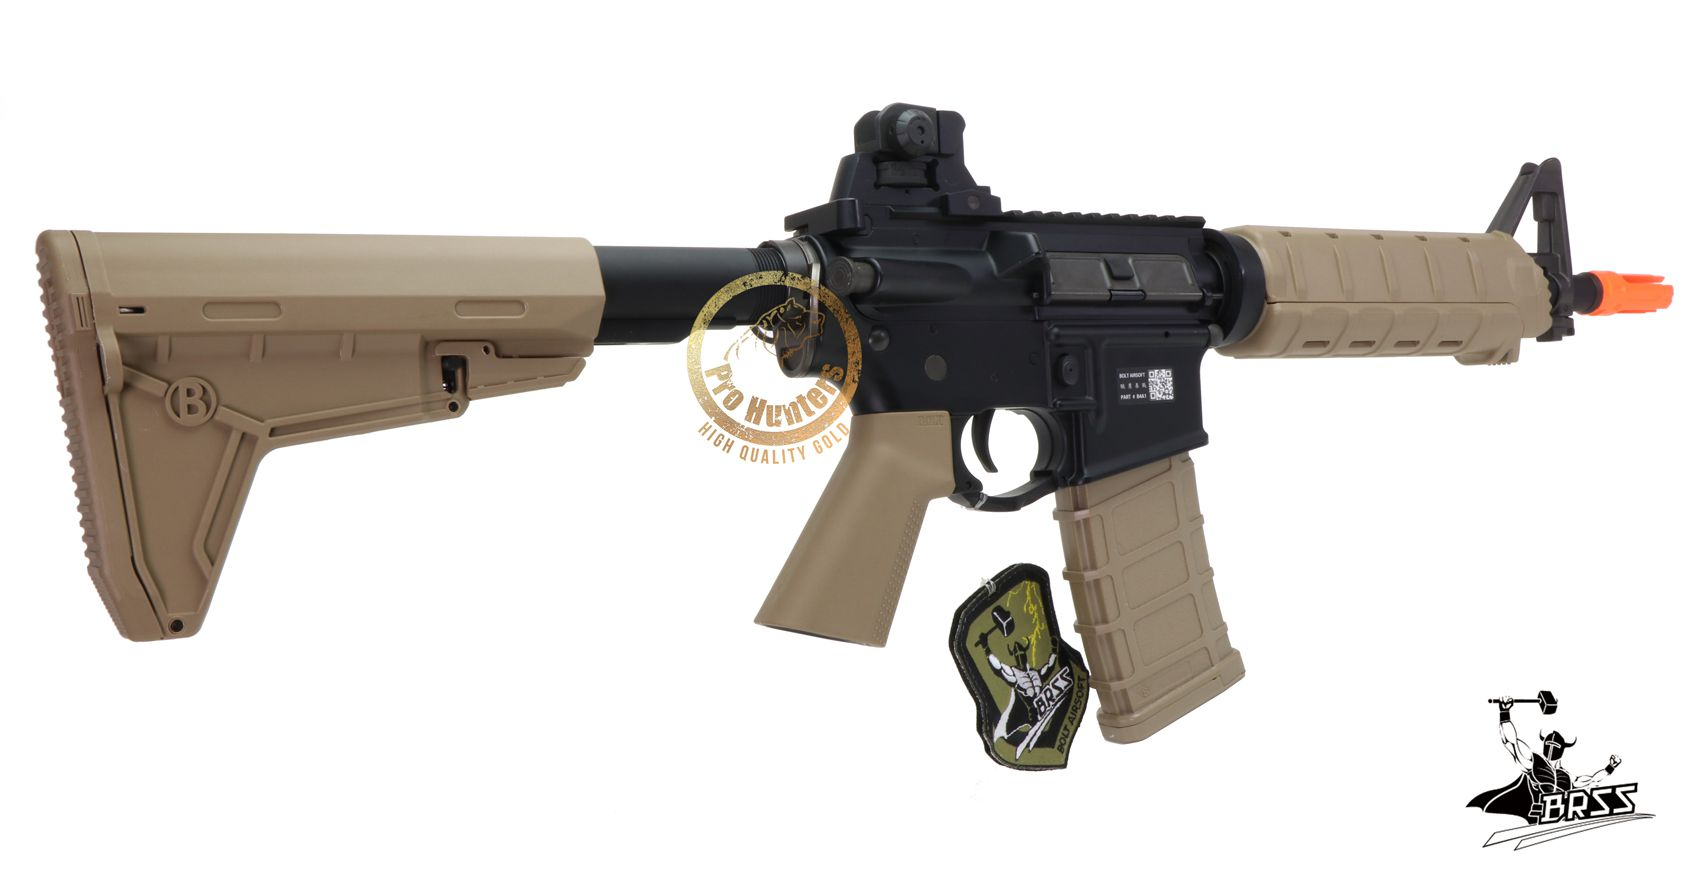 Rifle Airsoft M4 BOLT B4A1 ELITE sd - TAN Full Metal - Blowback & Recoil System - FRETE GRÁTIS